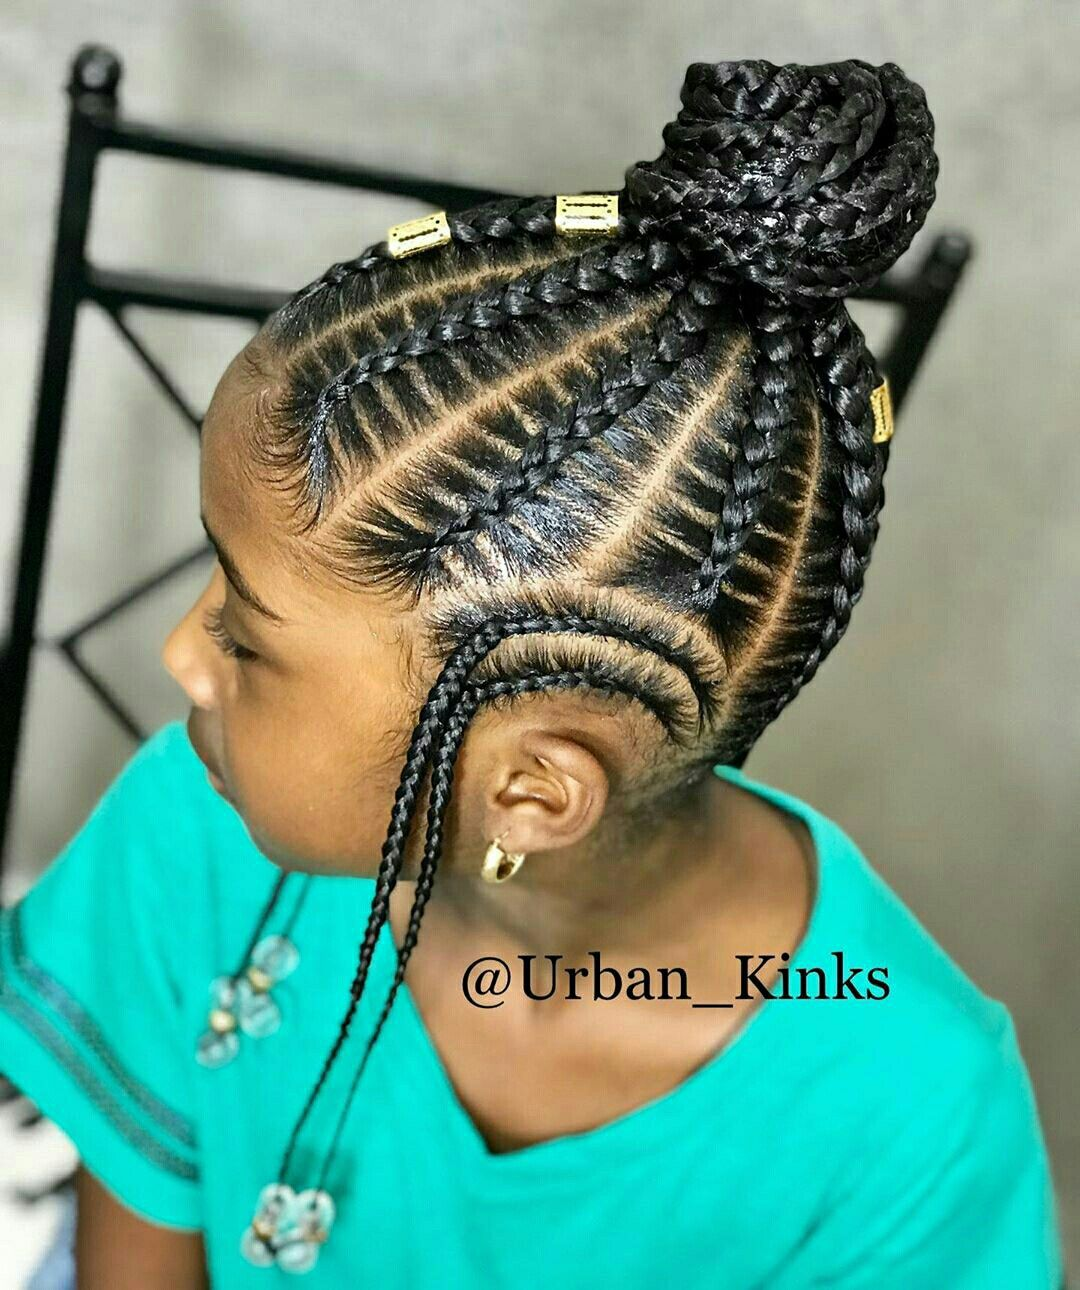 Kids Natural Hairstyles Easy Holiday Christmas Hairstyles The Rubber Band Buns Part Ll Youtube Natural Hairstyles For Kids Hair Styles Kids Hairstyles